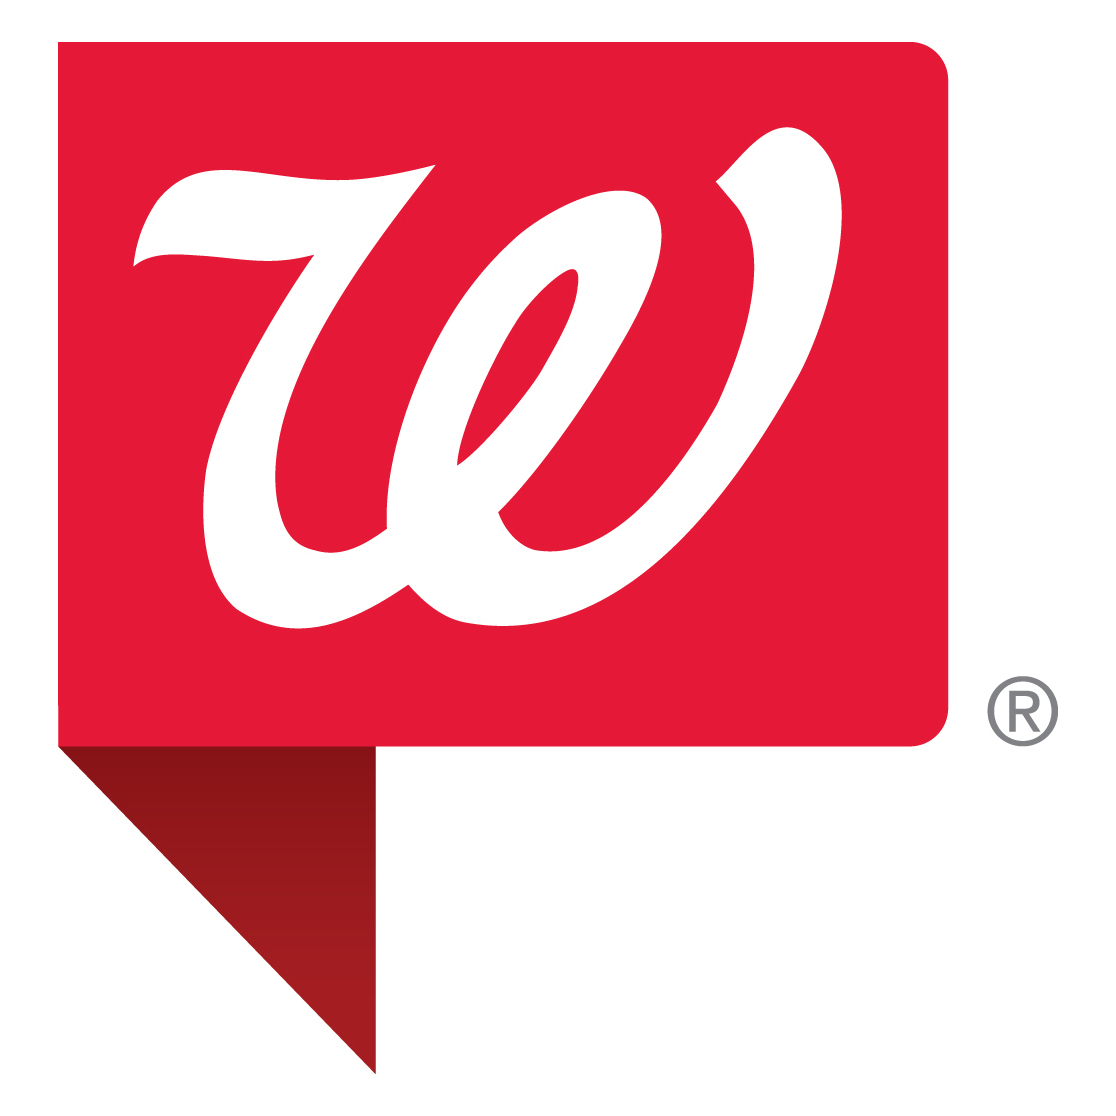 Walgreens - Ridgeland, MS - Pharmacist